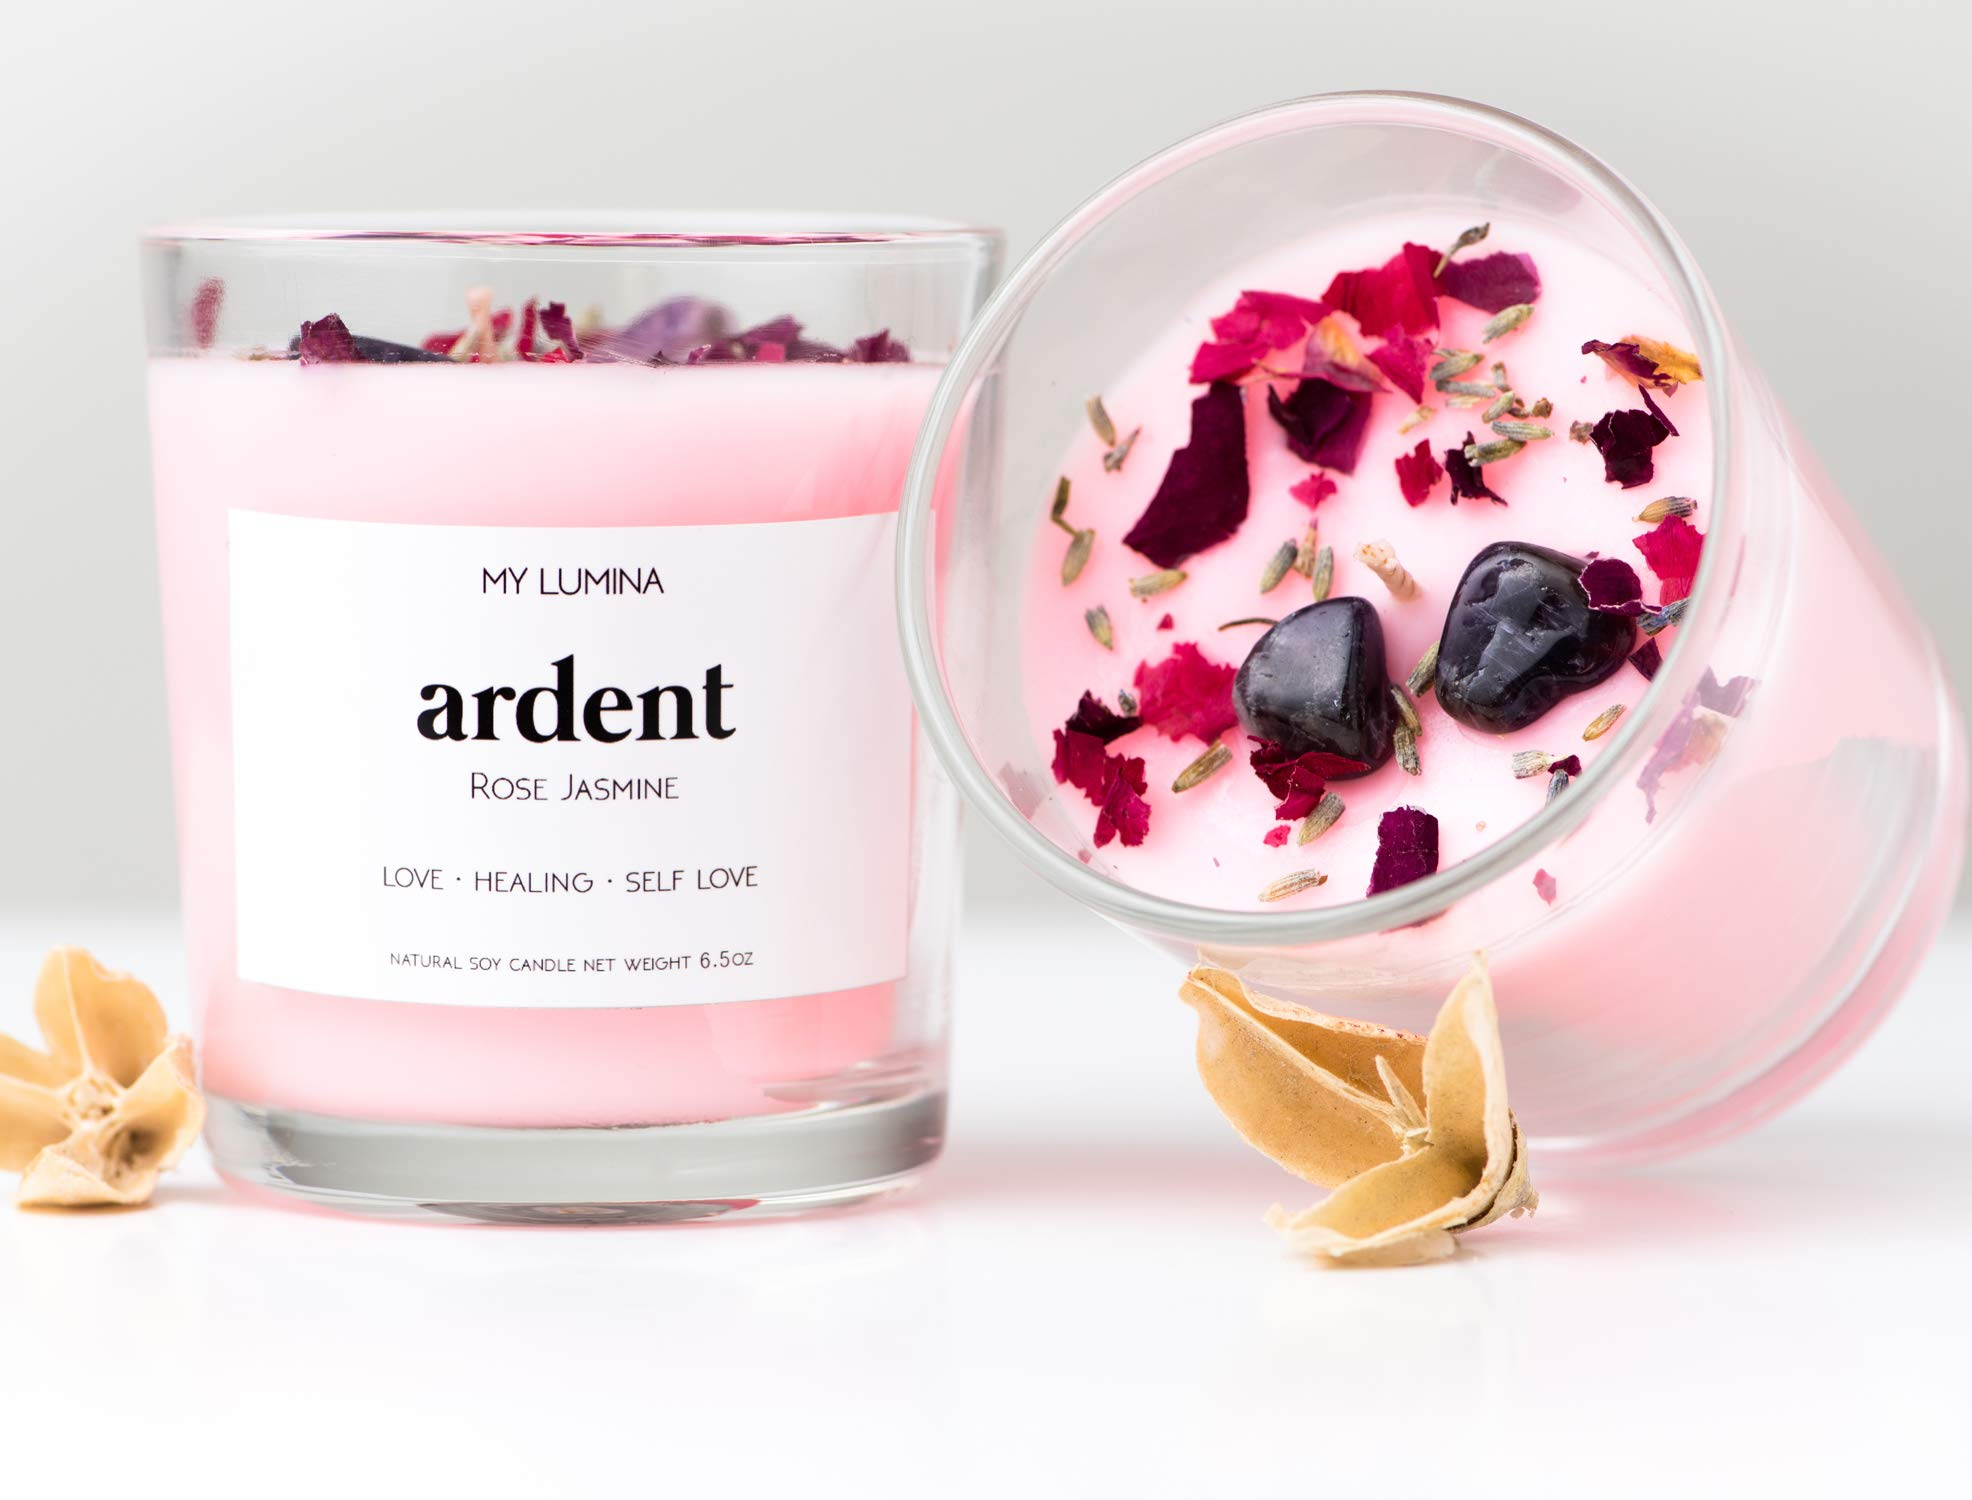 My Lumina Ardent Love Pink Candle - Romantic Sweet Love Candle Natural Soy Wax - Rose and Jasmine Natural Scented Purifying Candle for Aromatherapy by My Lumina